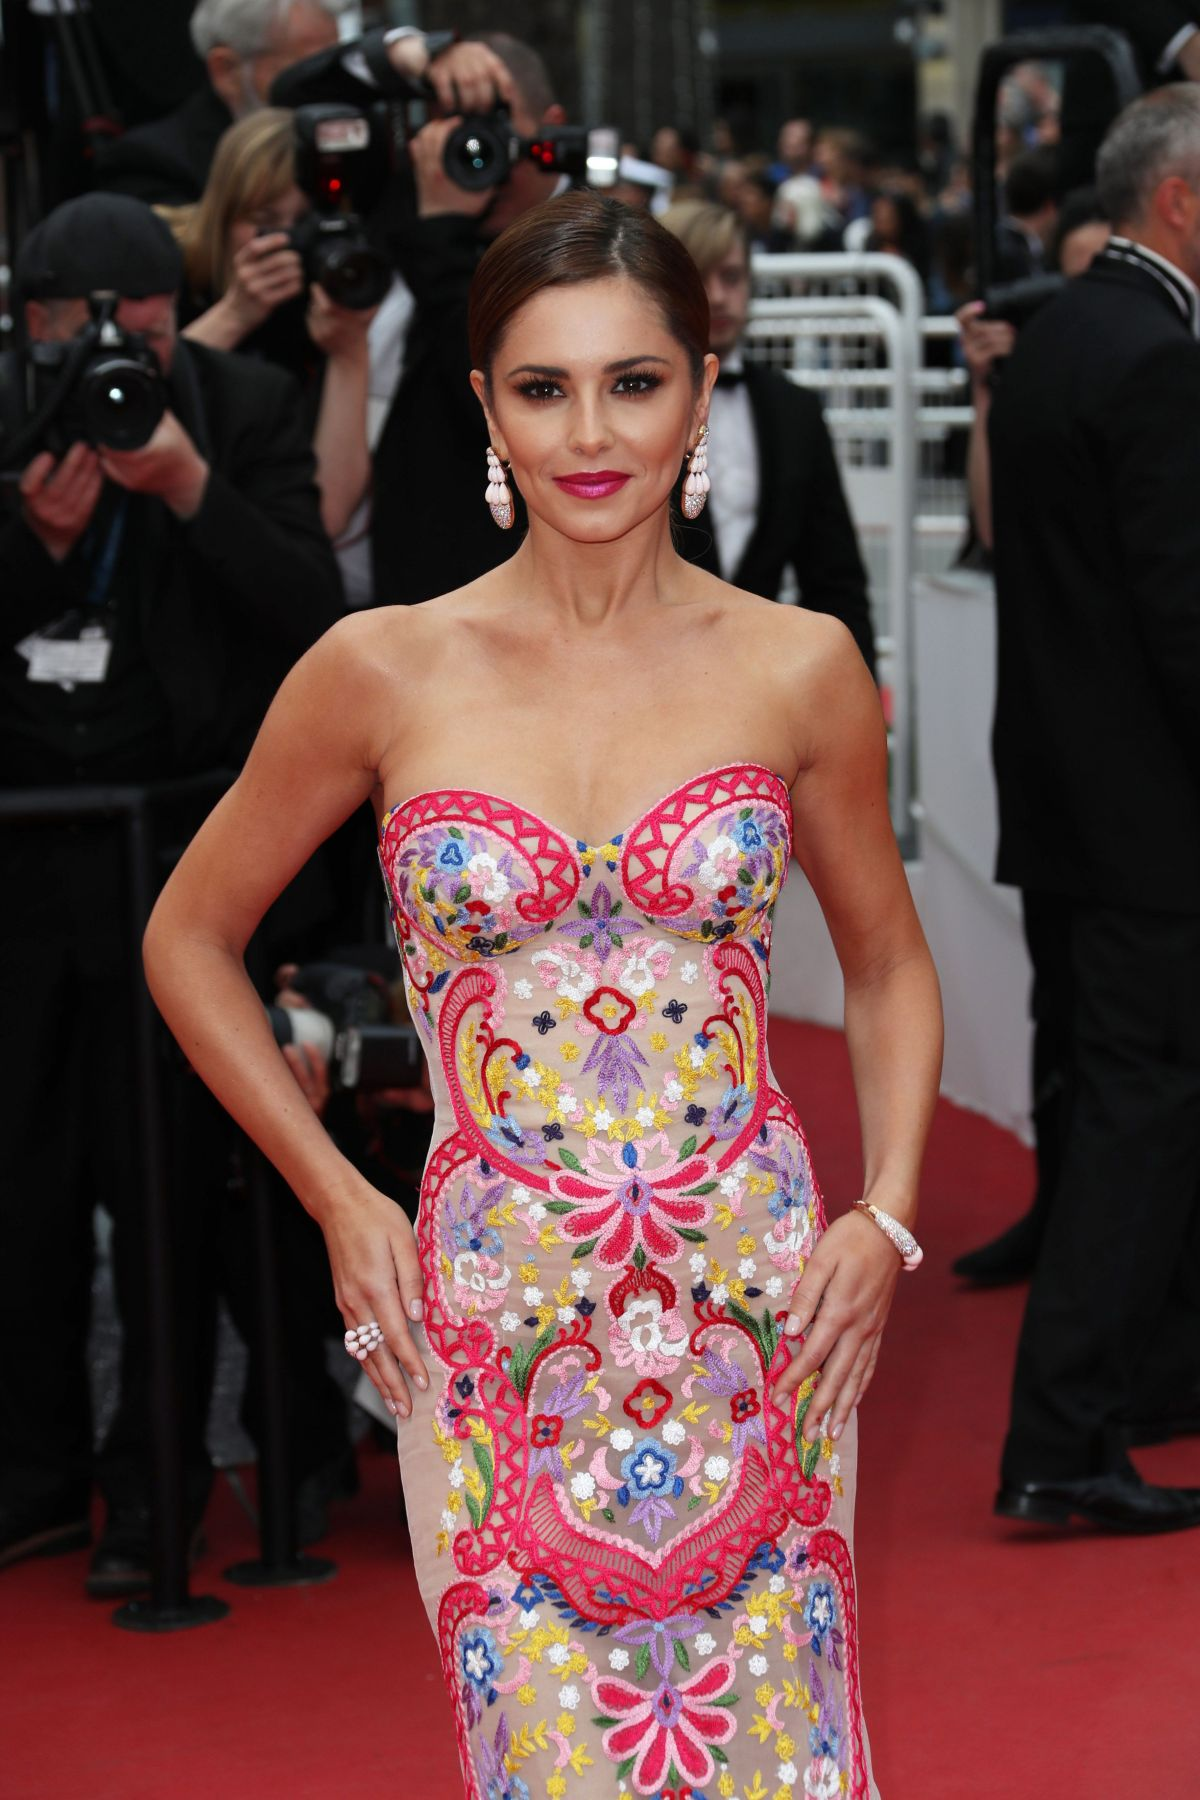 Cheryl Cole At Slack Bay Premiere At 69th Cannes Film Festival 05